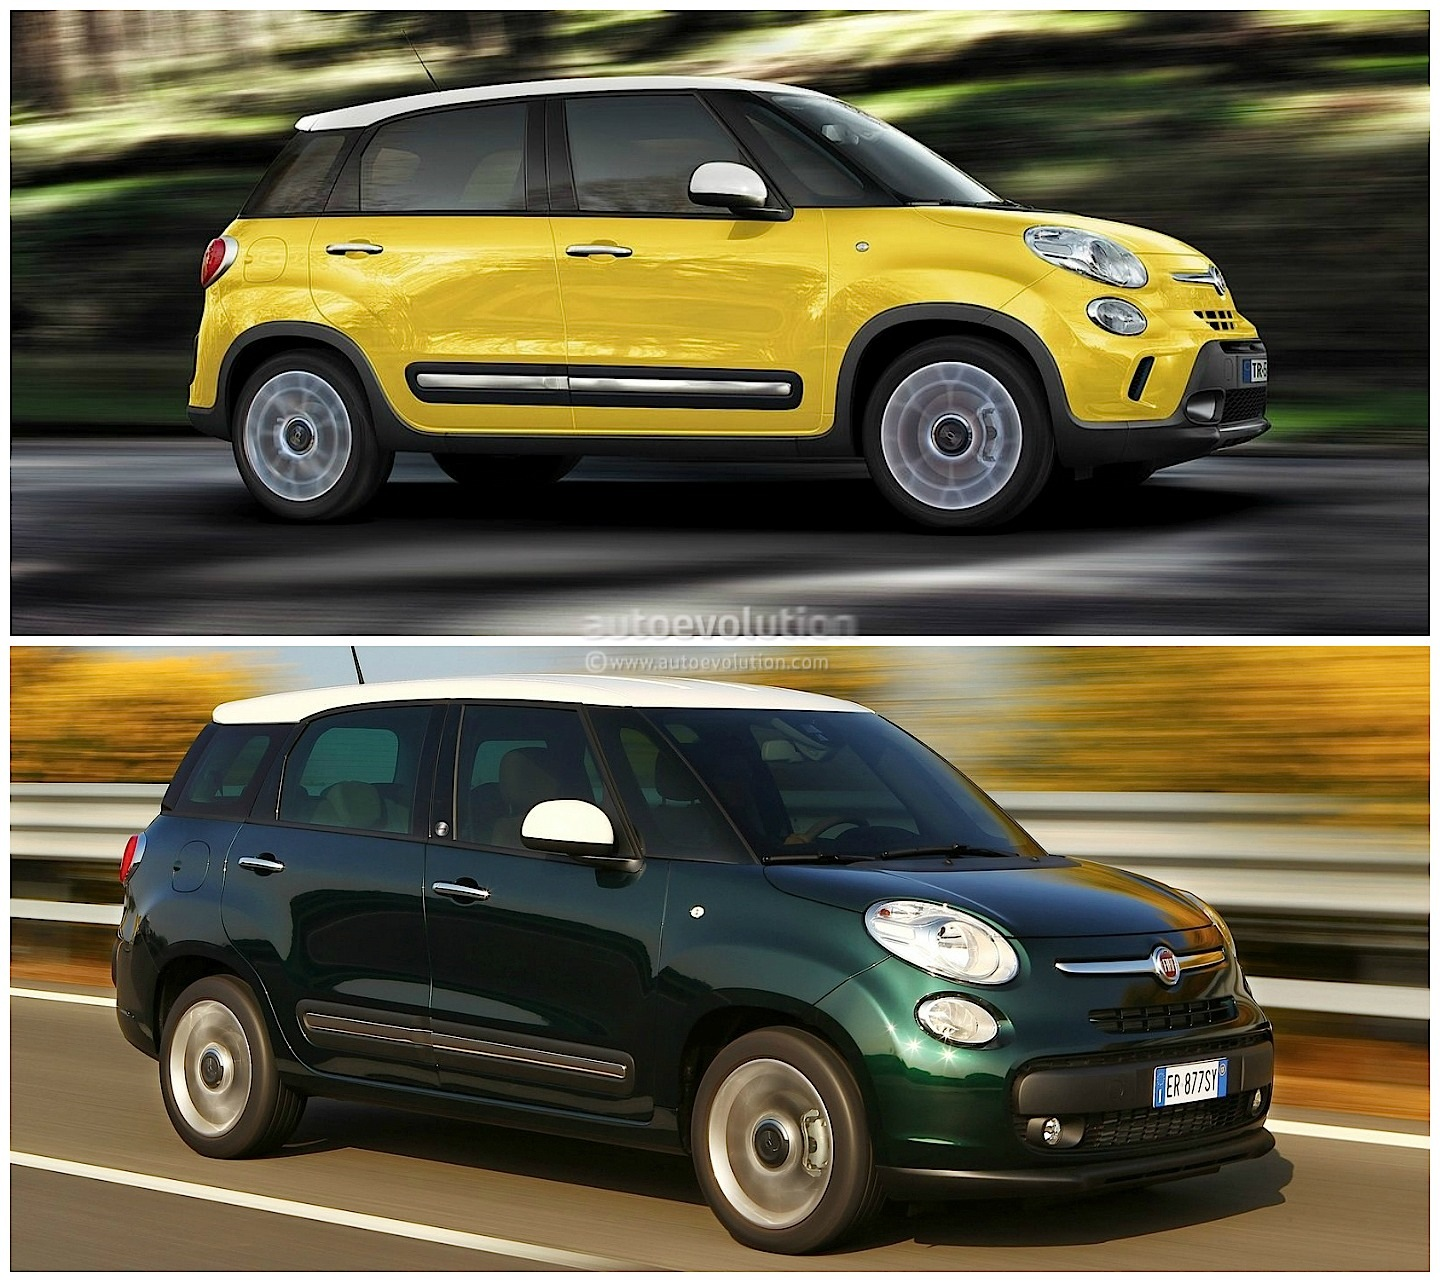 fiat 500x vs 500l vs 500 italian family comparison autoevolution. Black Bedroom Furniture Sets. Home Design Ideas